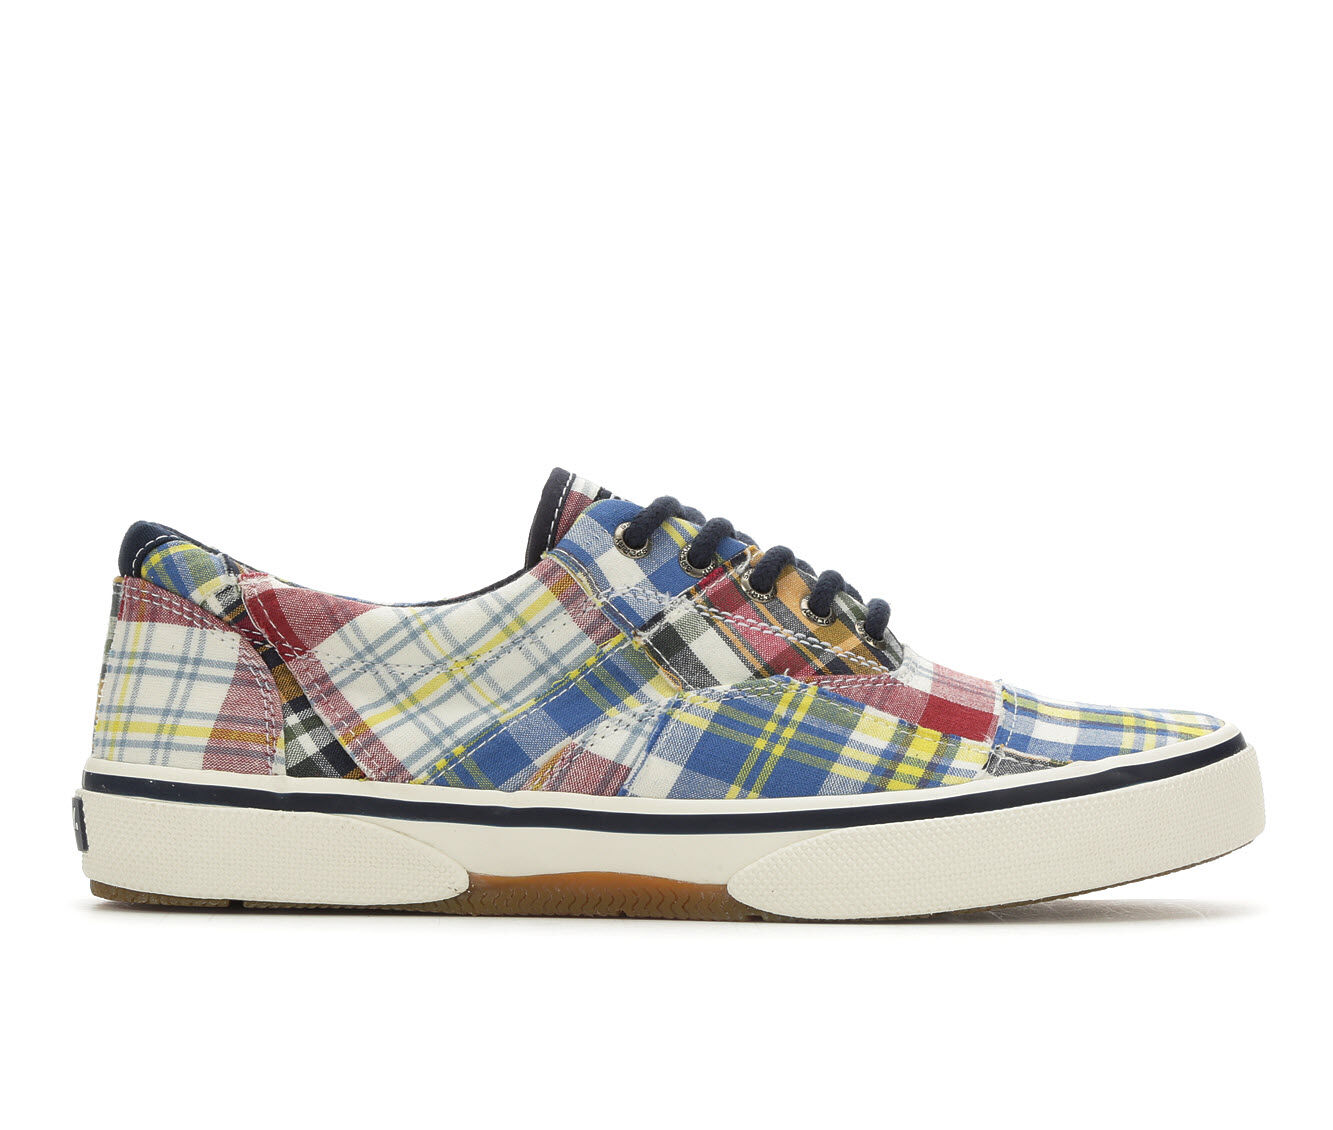 Men's Sperry Halyard Laceless Casual Shoes Madras